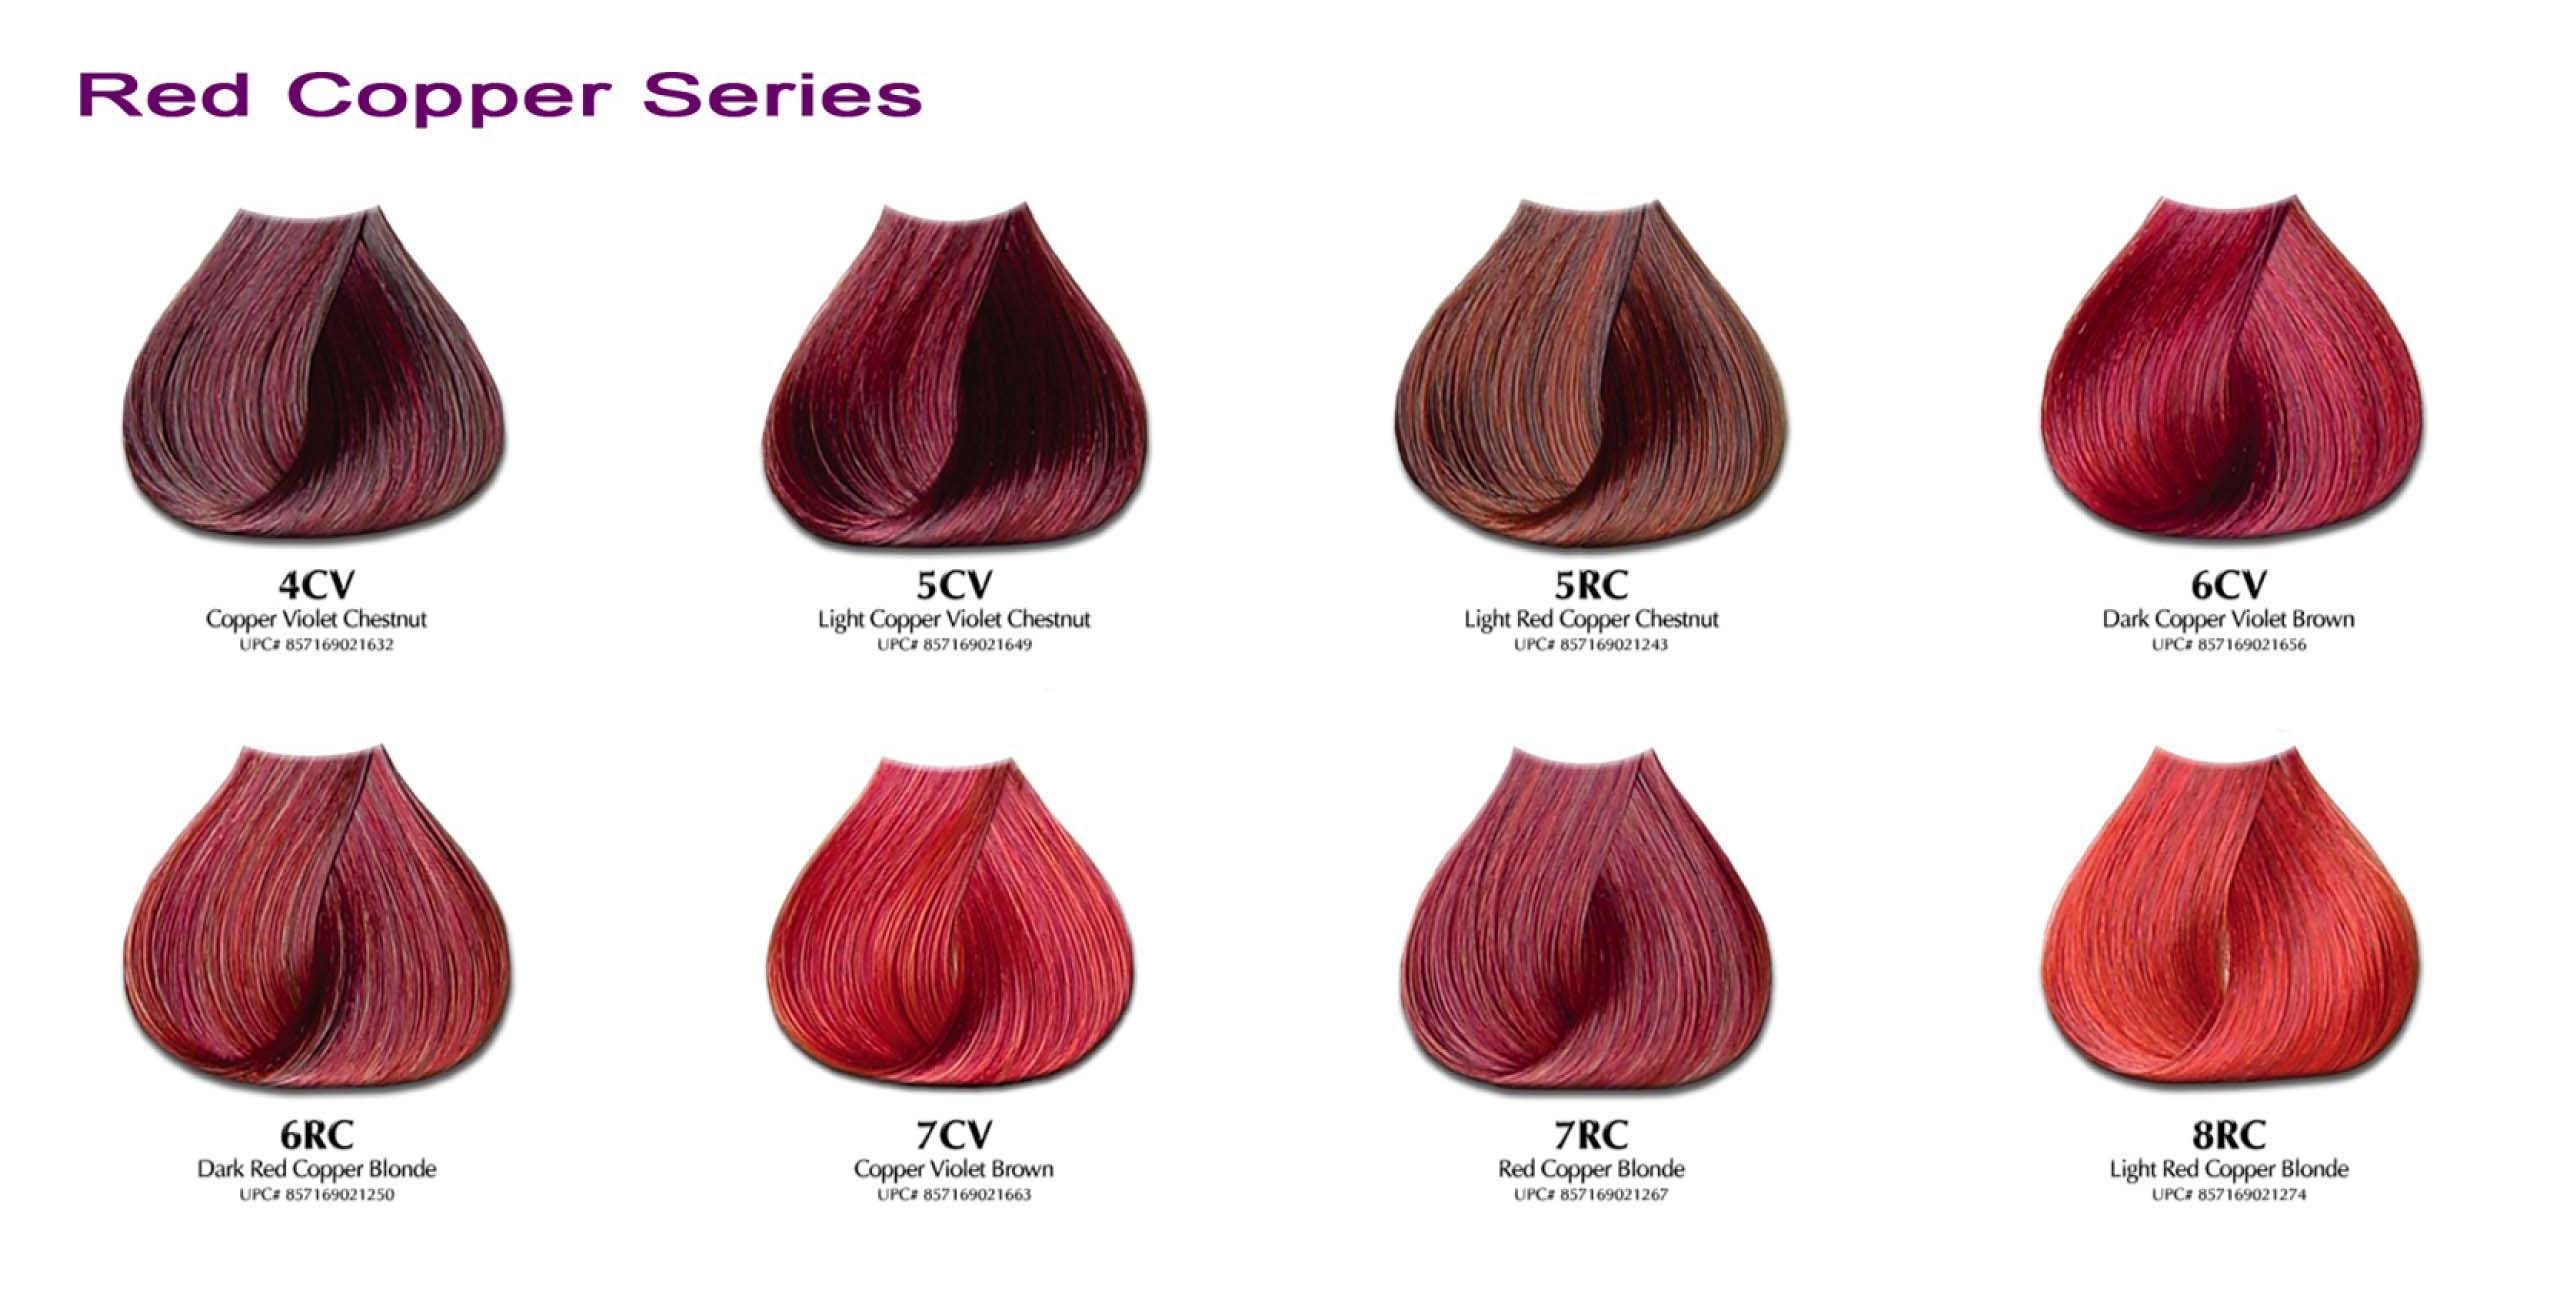 Satin Hair Colors Buy Online Hair Colors Ysb Beauty Red Hair Color Chart Hair Color Chart Red Hair Color